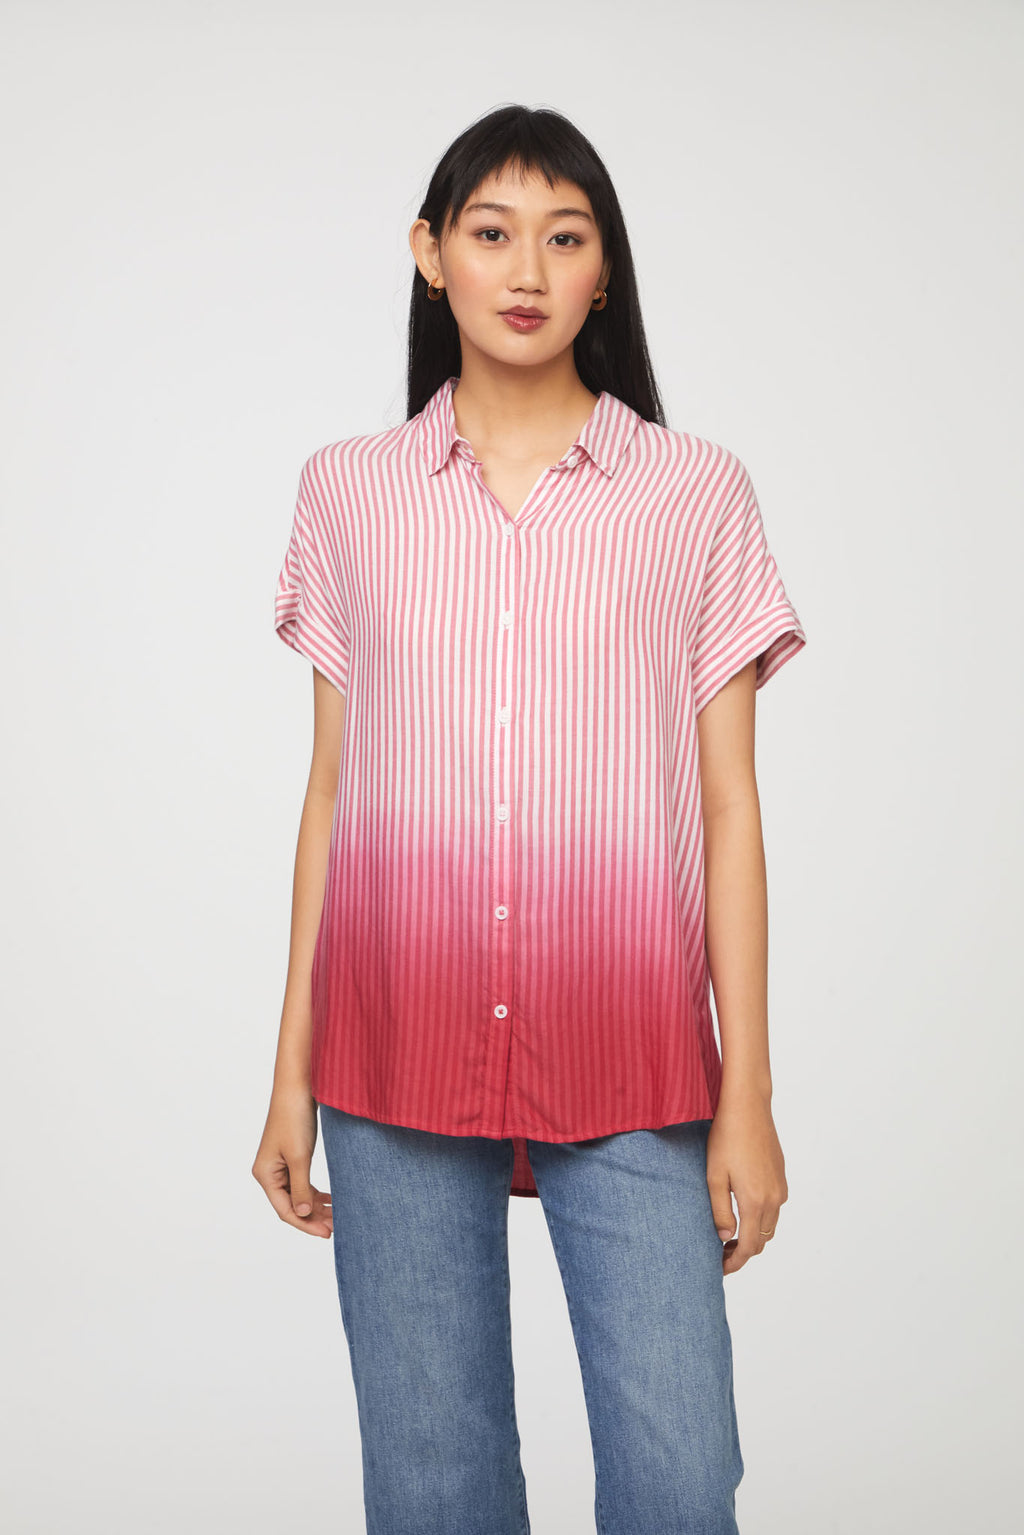 SPENCER SHIRT - CAMILLIA DIP DYE